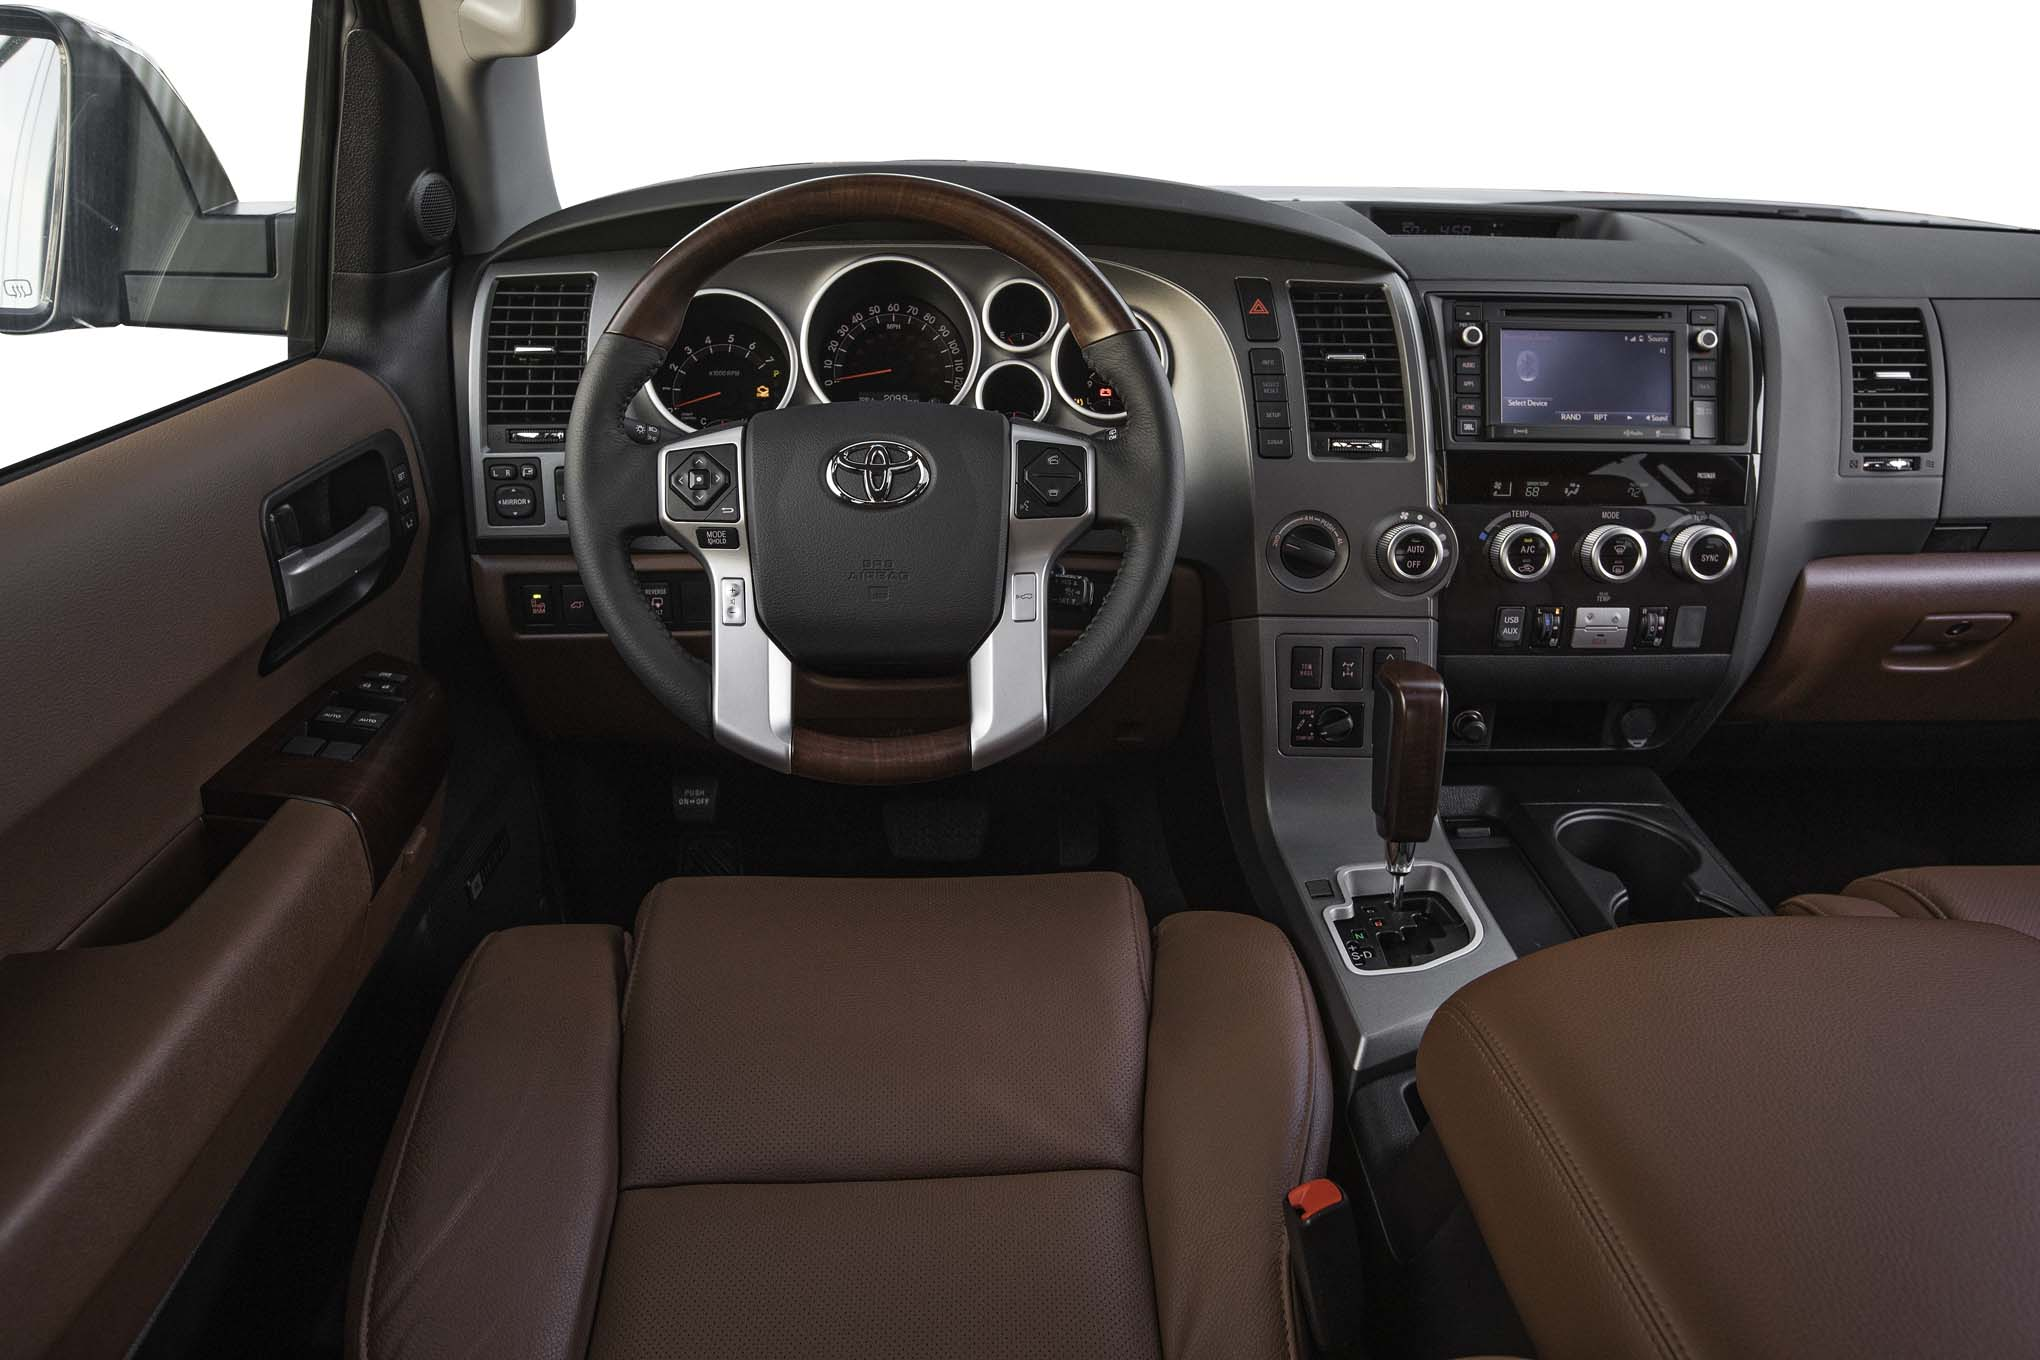 2017 Toyota Sequoia 4×4 Platinum Interior Driver Cockpit And Dash (Photo 12 of 26)